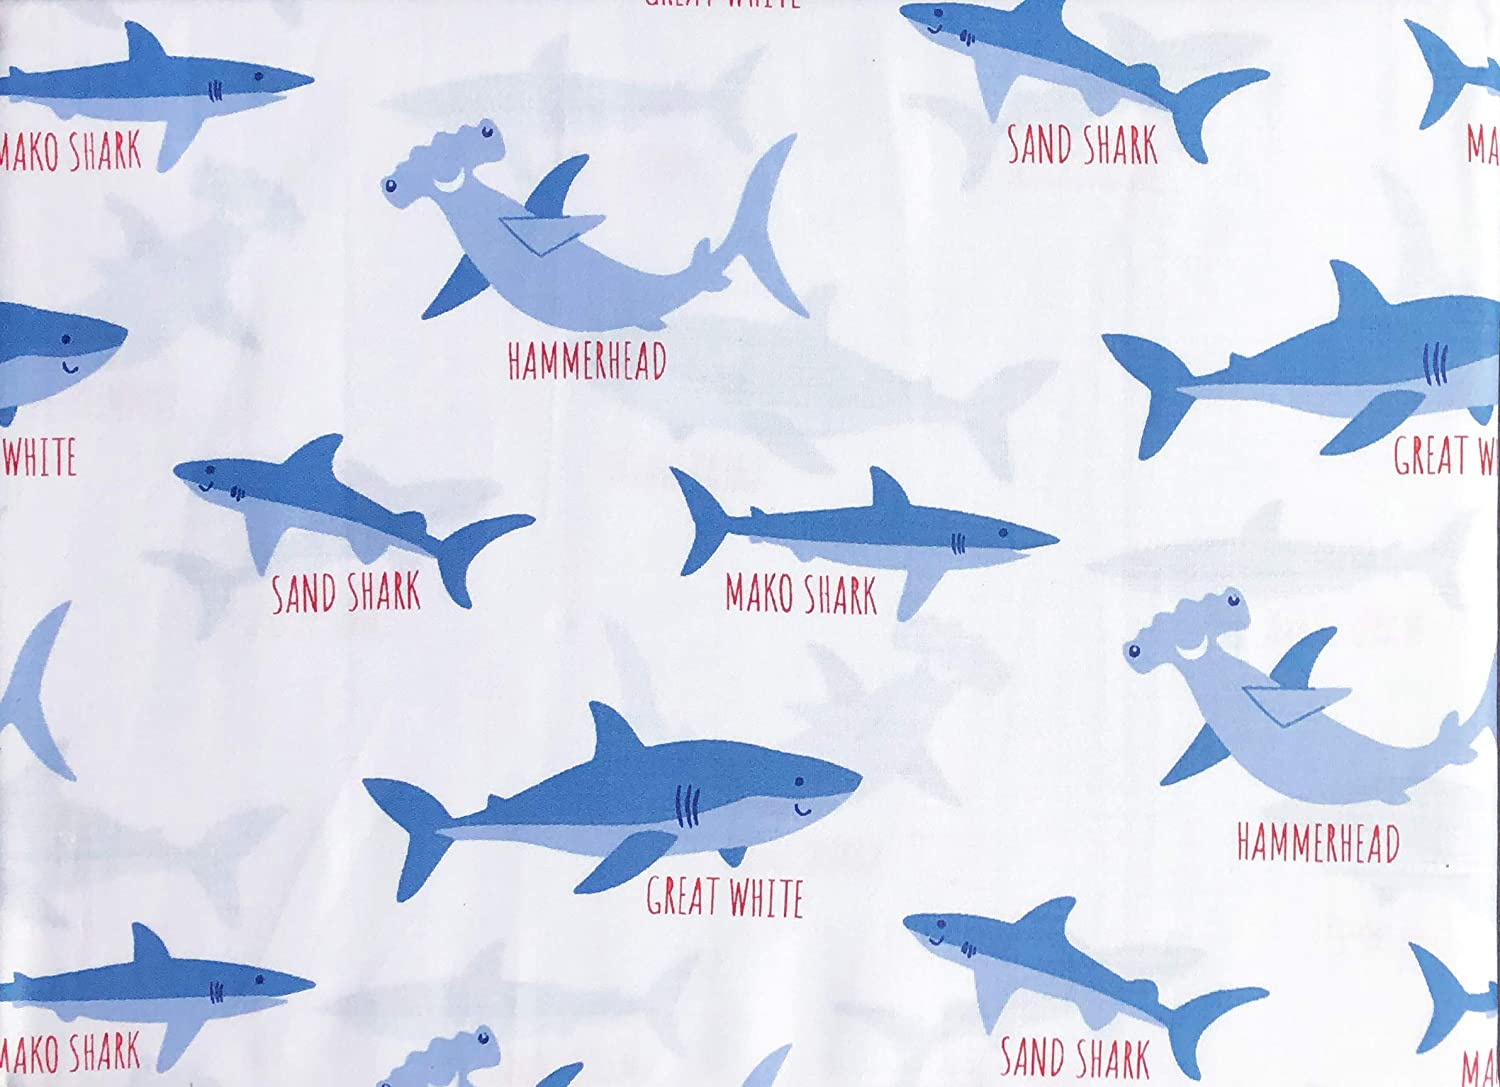 Authentic Kids 3pc Sheet Set Blue Sharks with Names Hammerhead Great White Sand Shark on White (Twin)